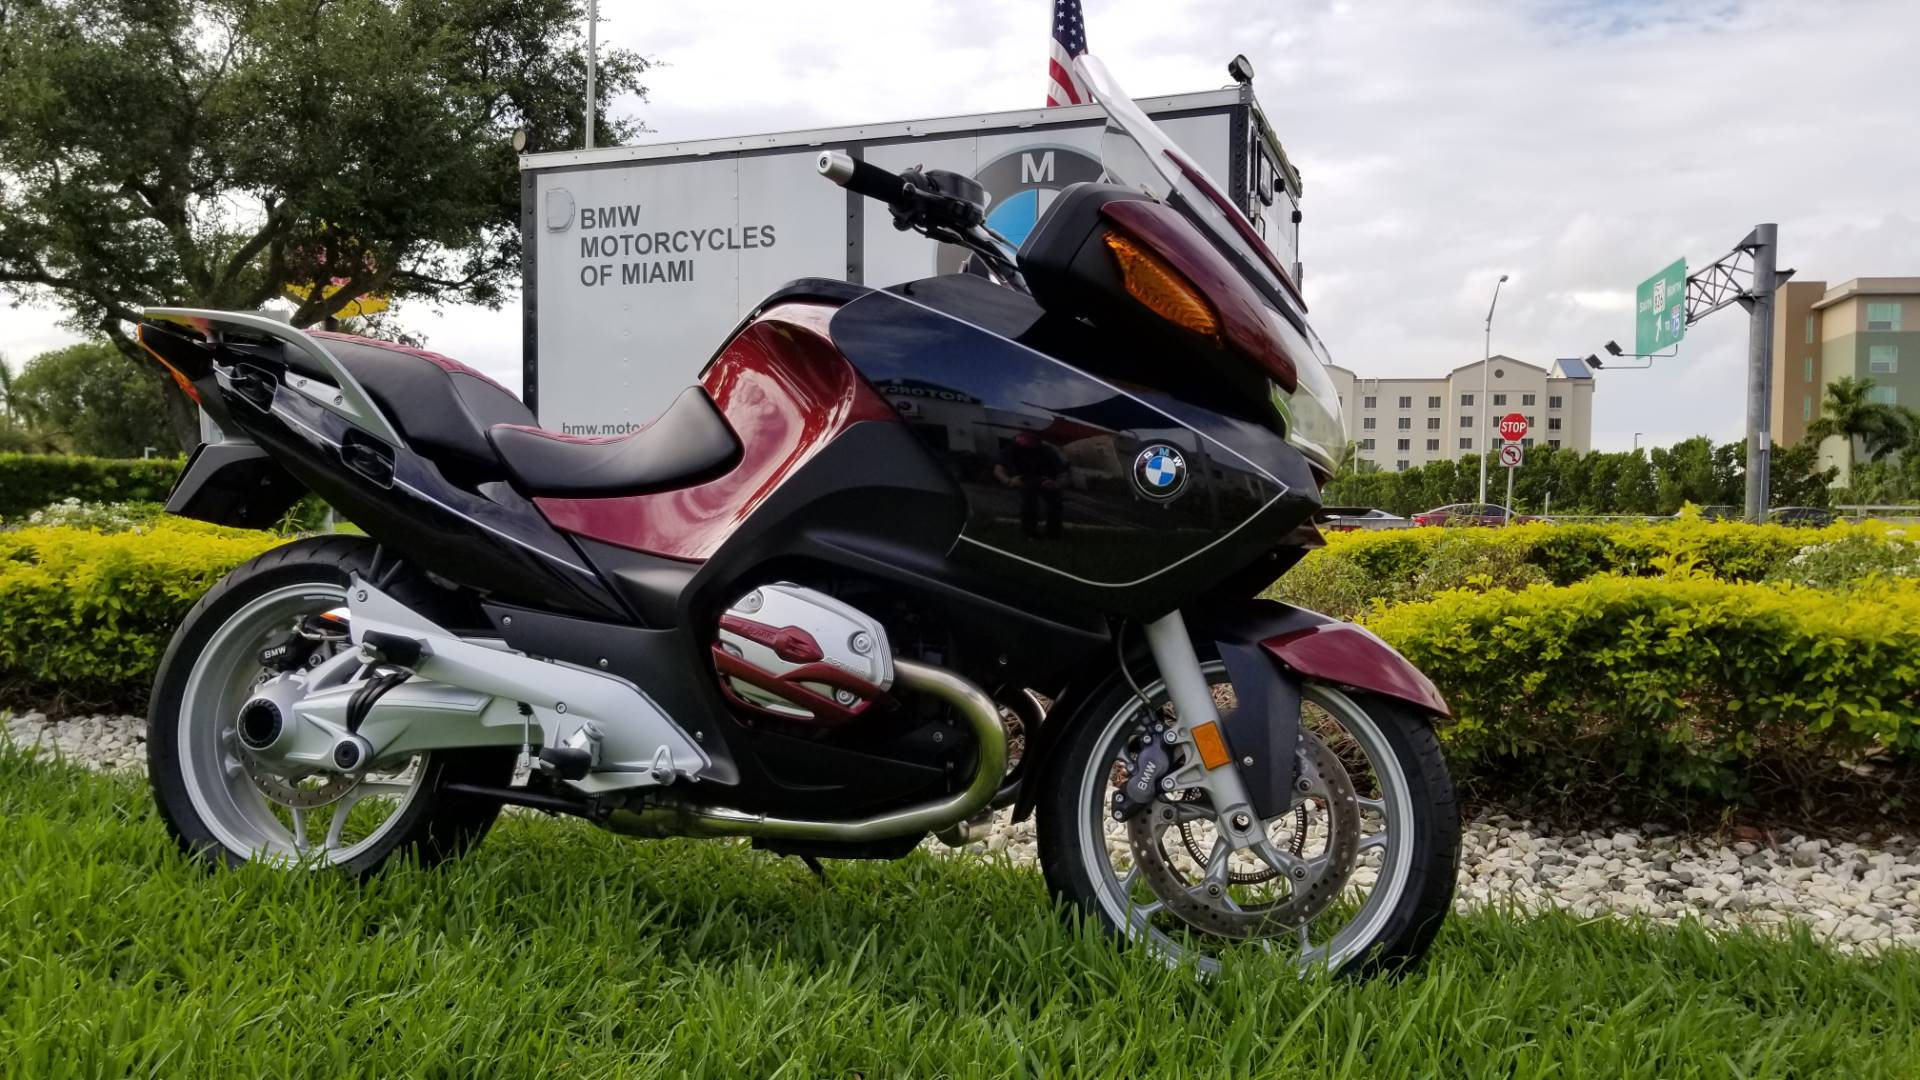 Used 2006 BMW R 1200 RT for sale, BMW R 1200RT for sale, BMW Motorcycle R1200RT, used BMW RT, Roadster, RT, BMW